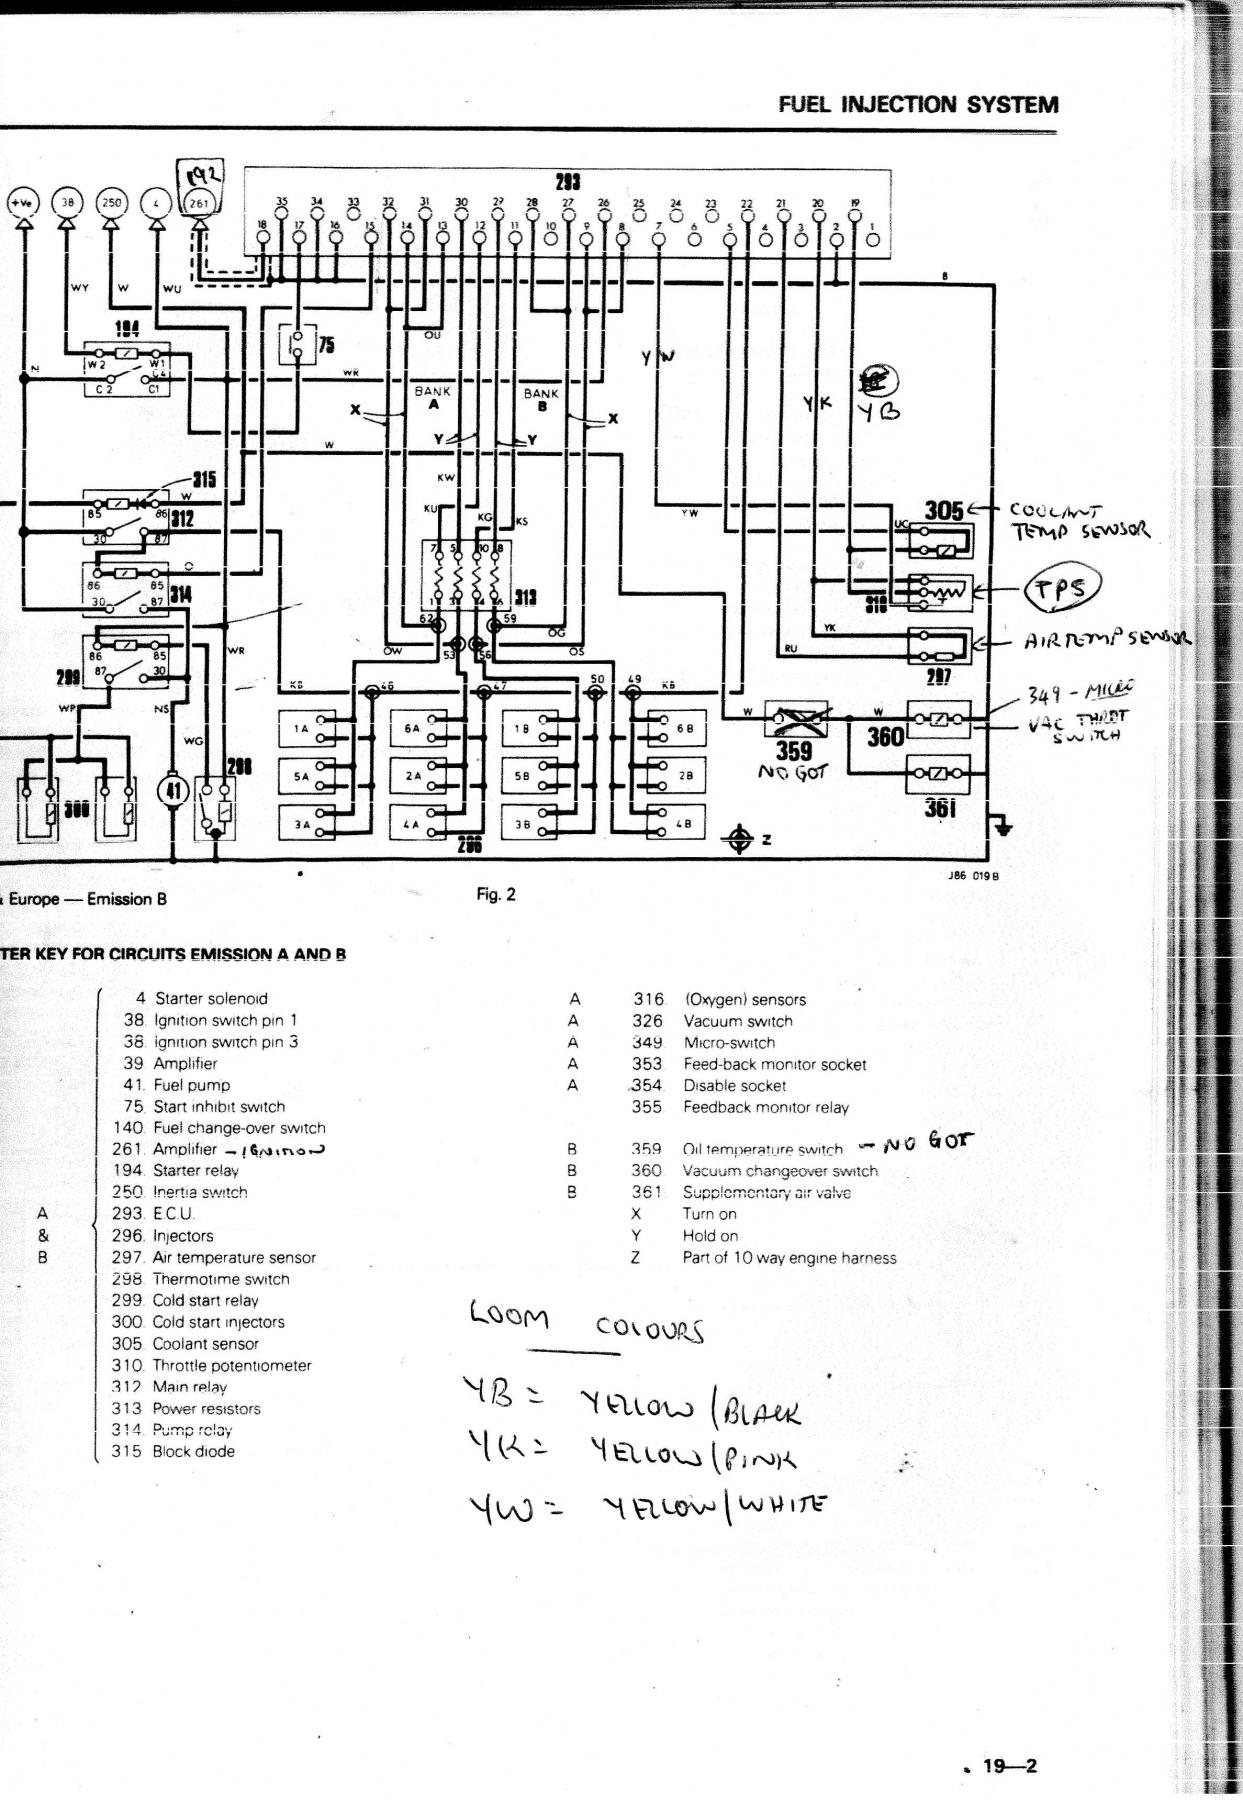 1970 jaguar e type wiring diagram